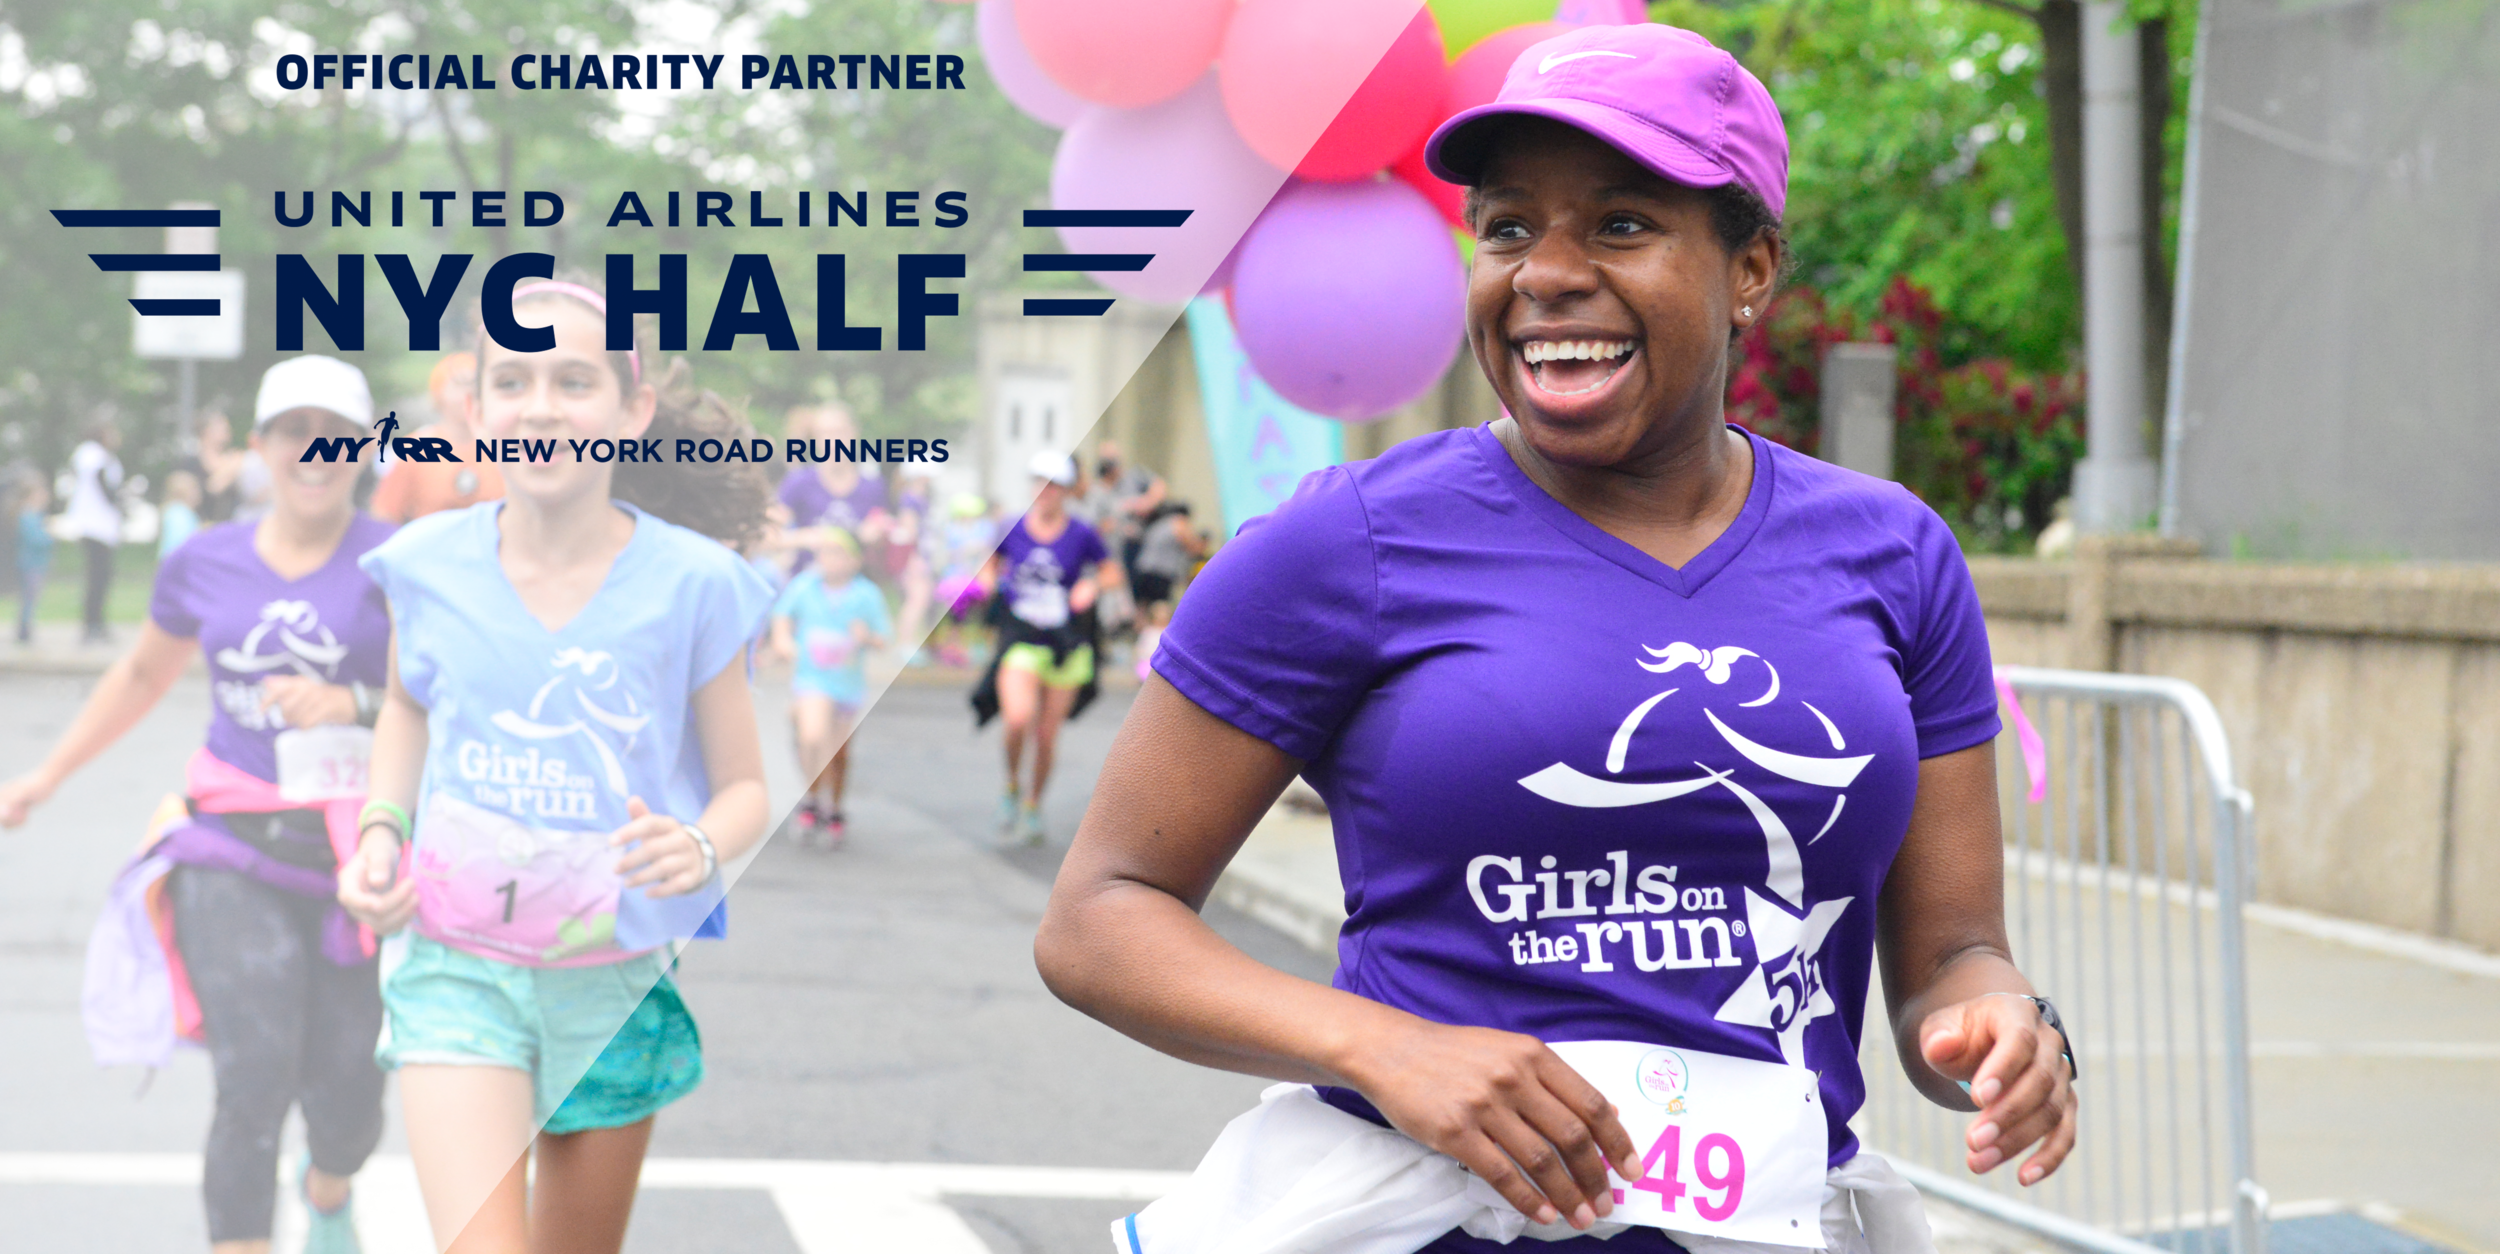 NYC Half SoleMates Charity Partner Banner.png